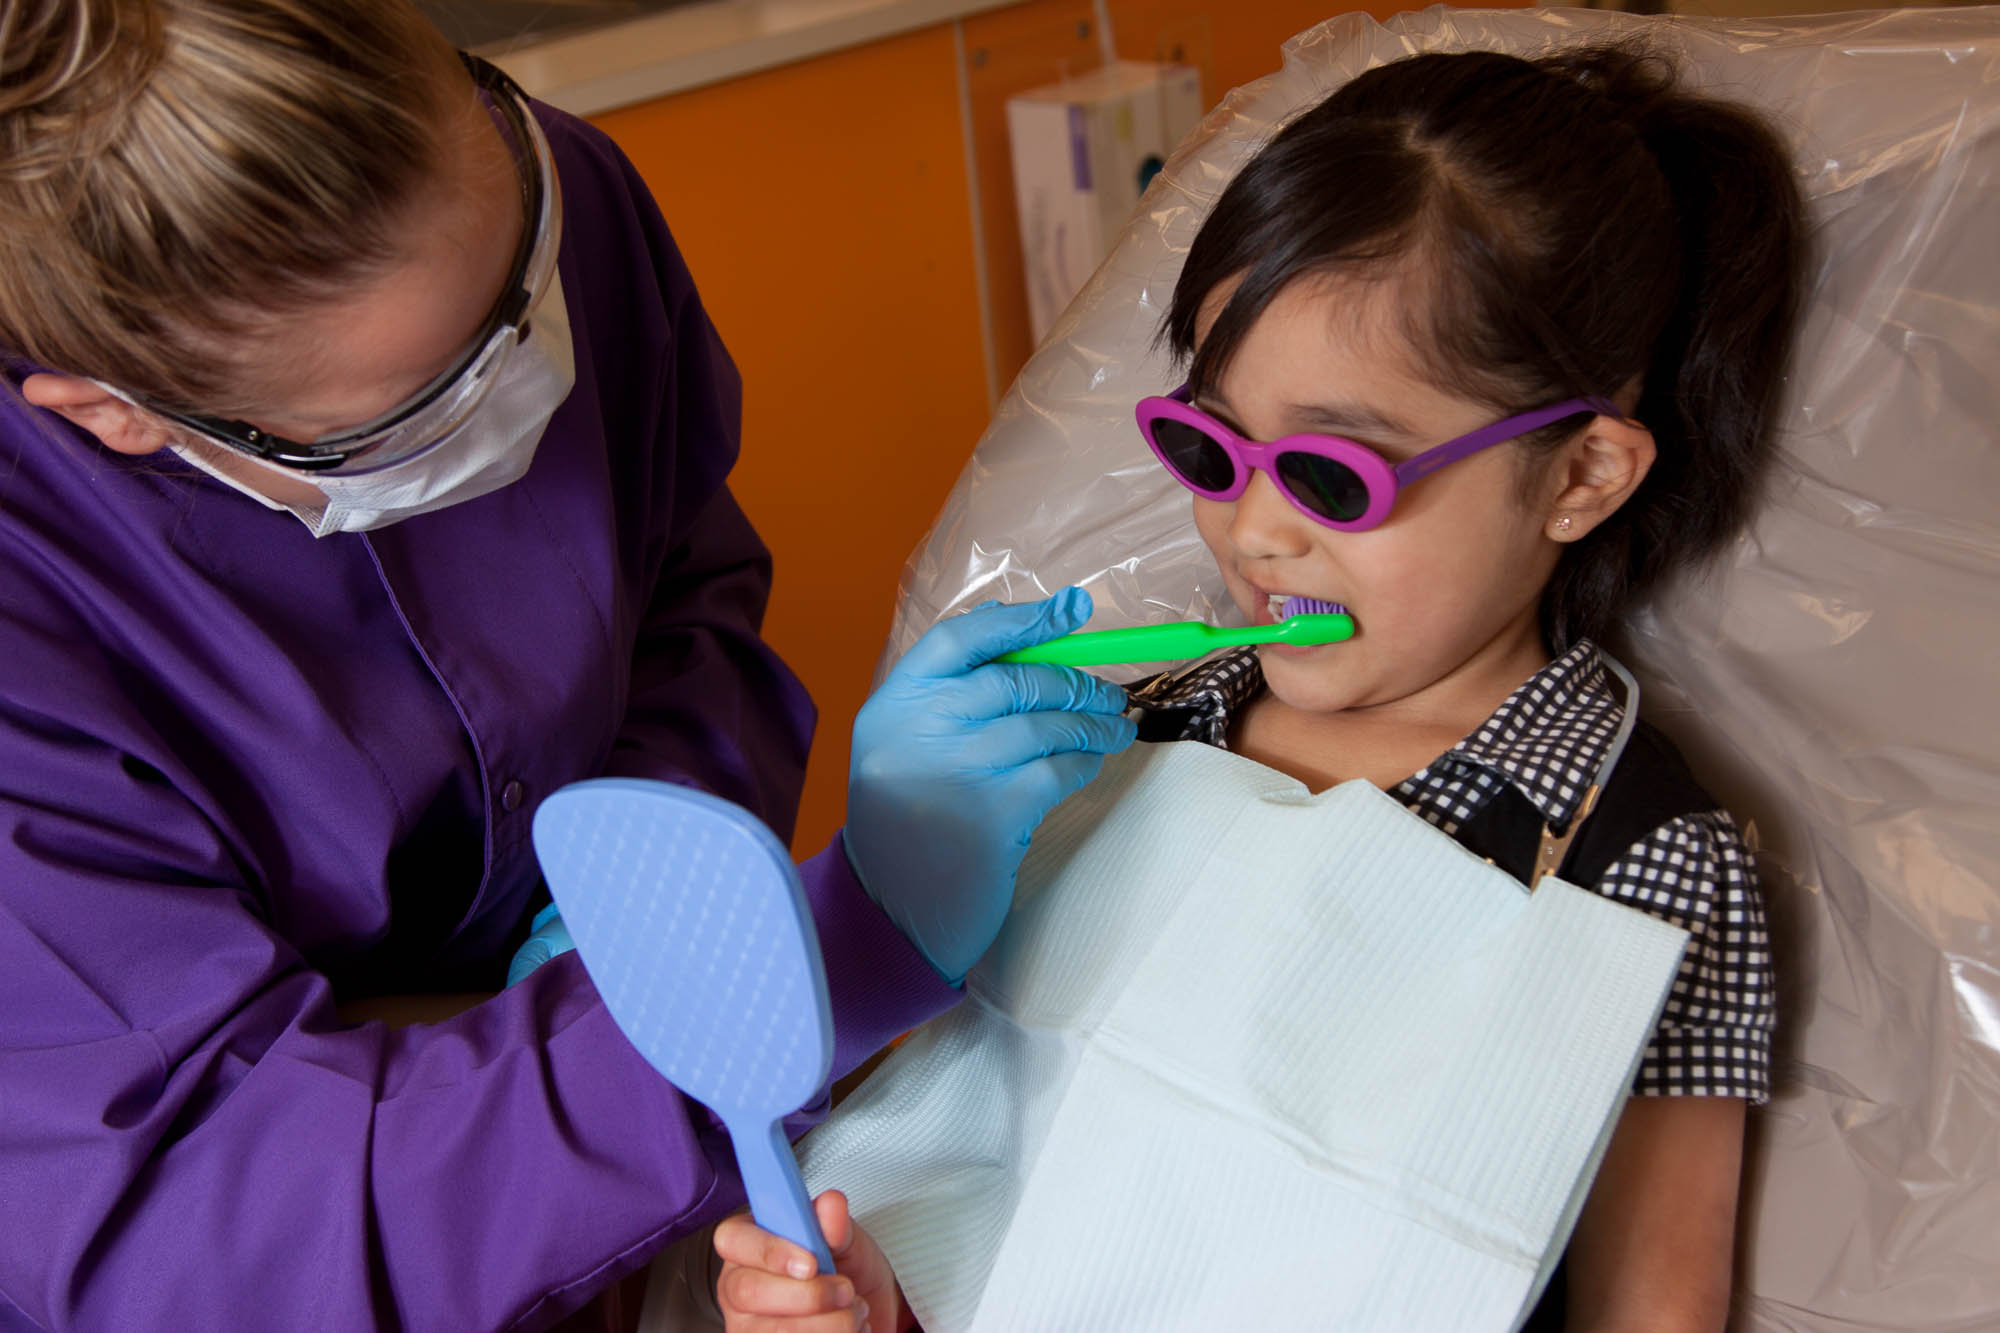 Dental student working with a young patient